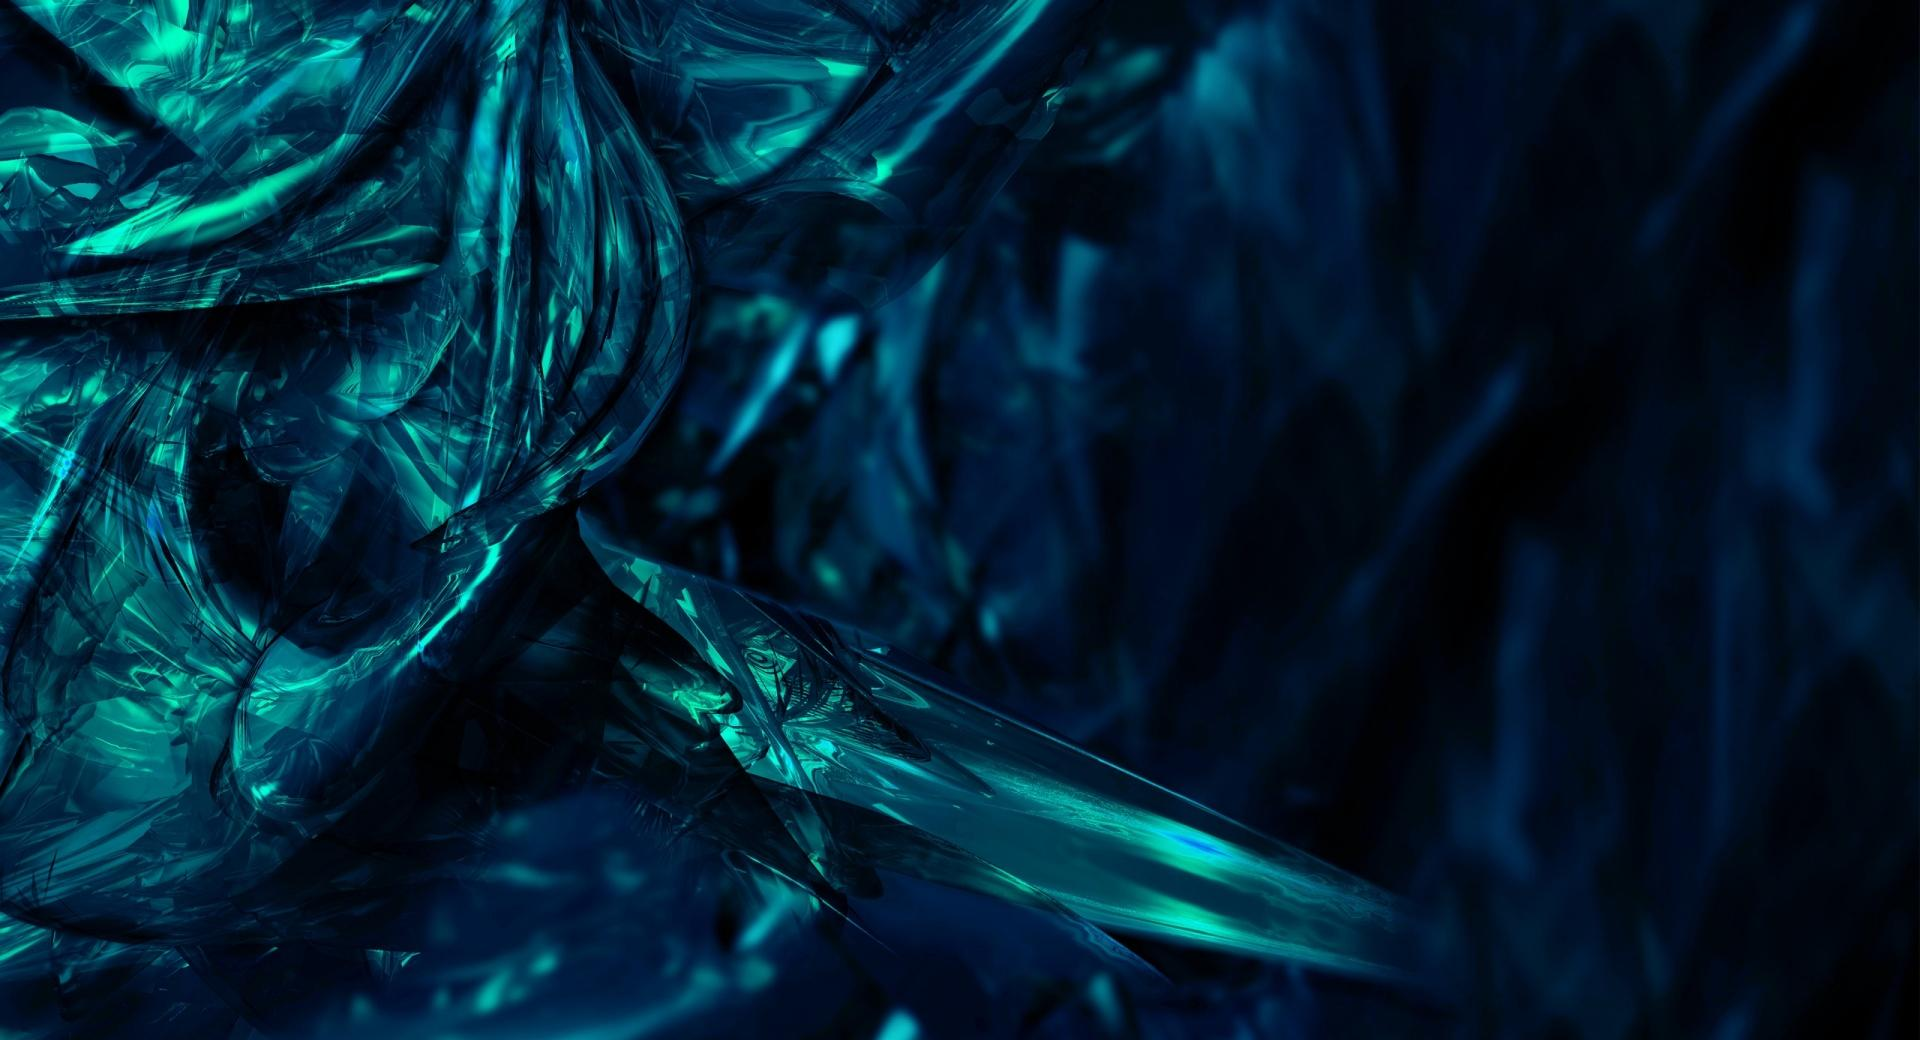 Abstract 3D Background wallpapers HD quality